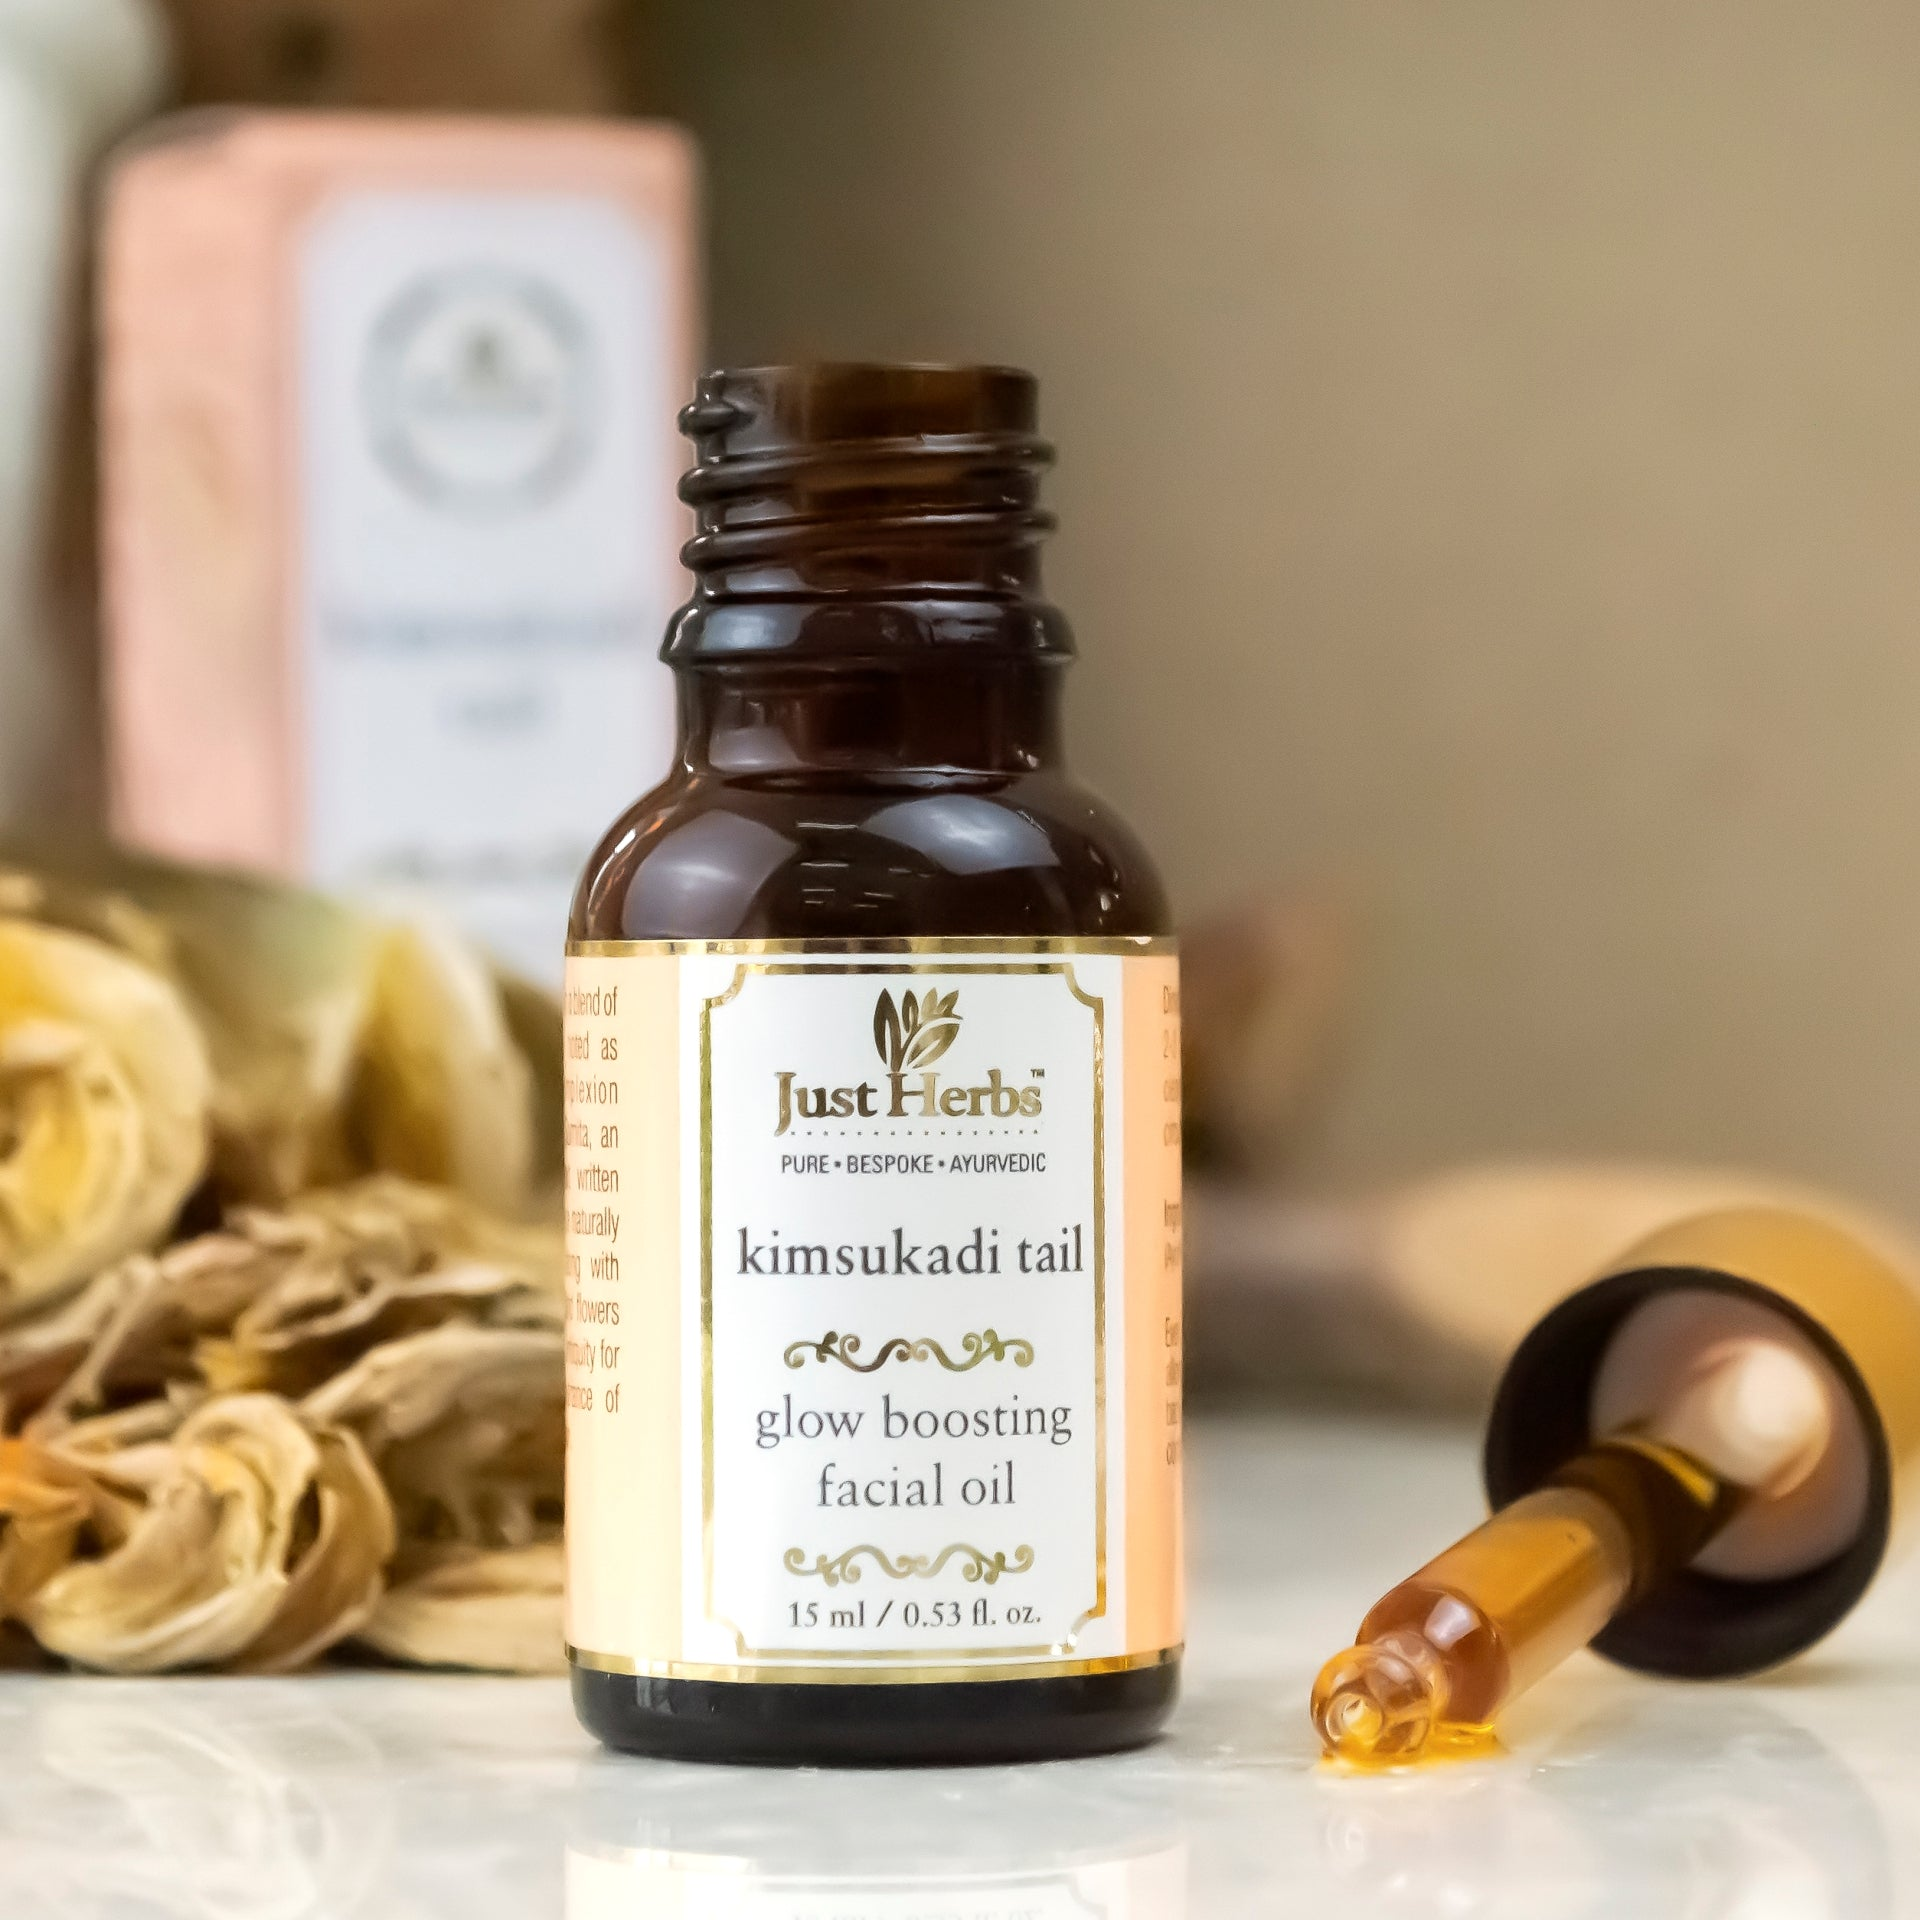 KIMSUKADI GLOW BOOSTING FACIAL OIL - SOUL EARTH